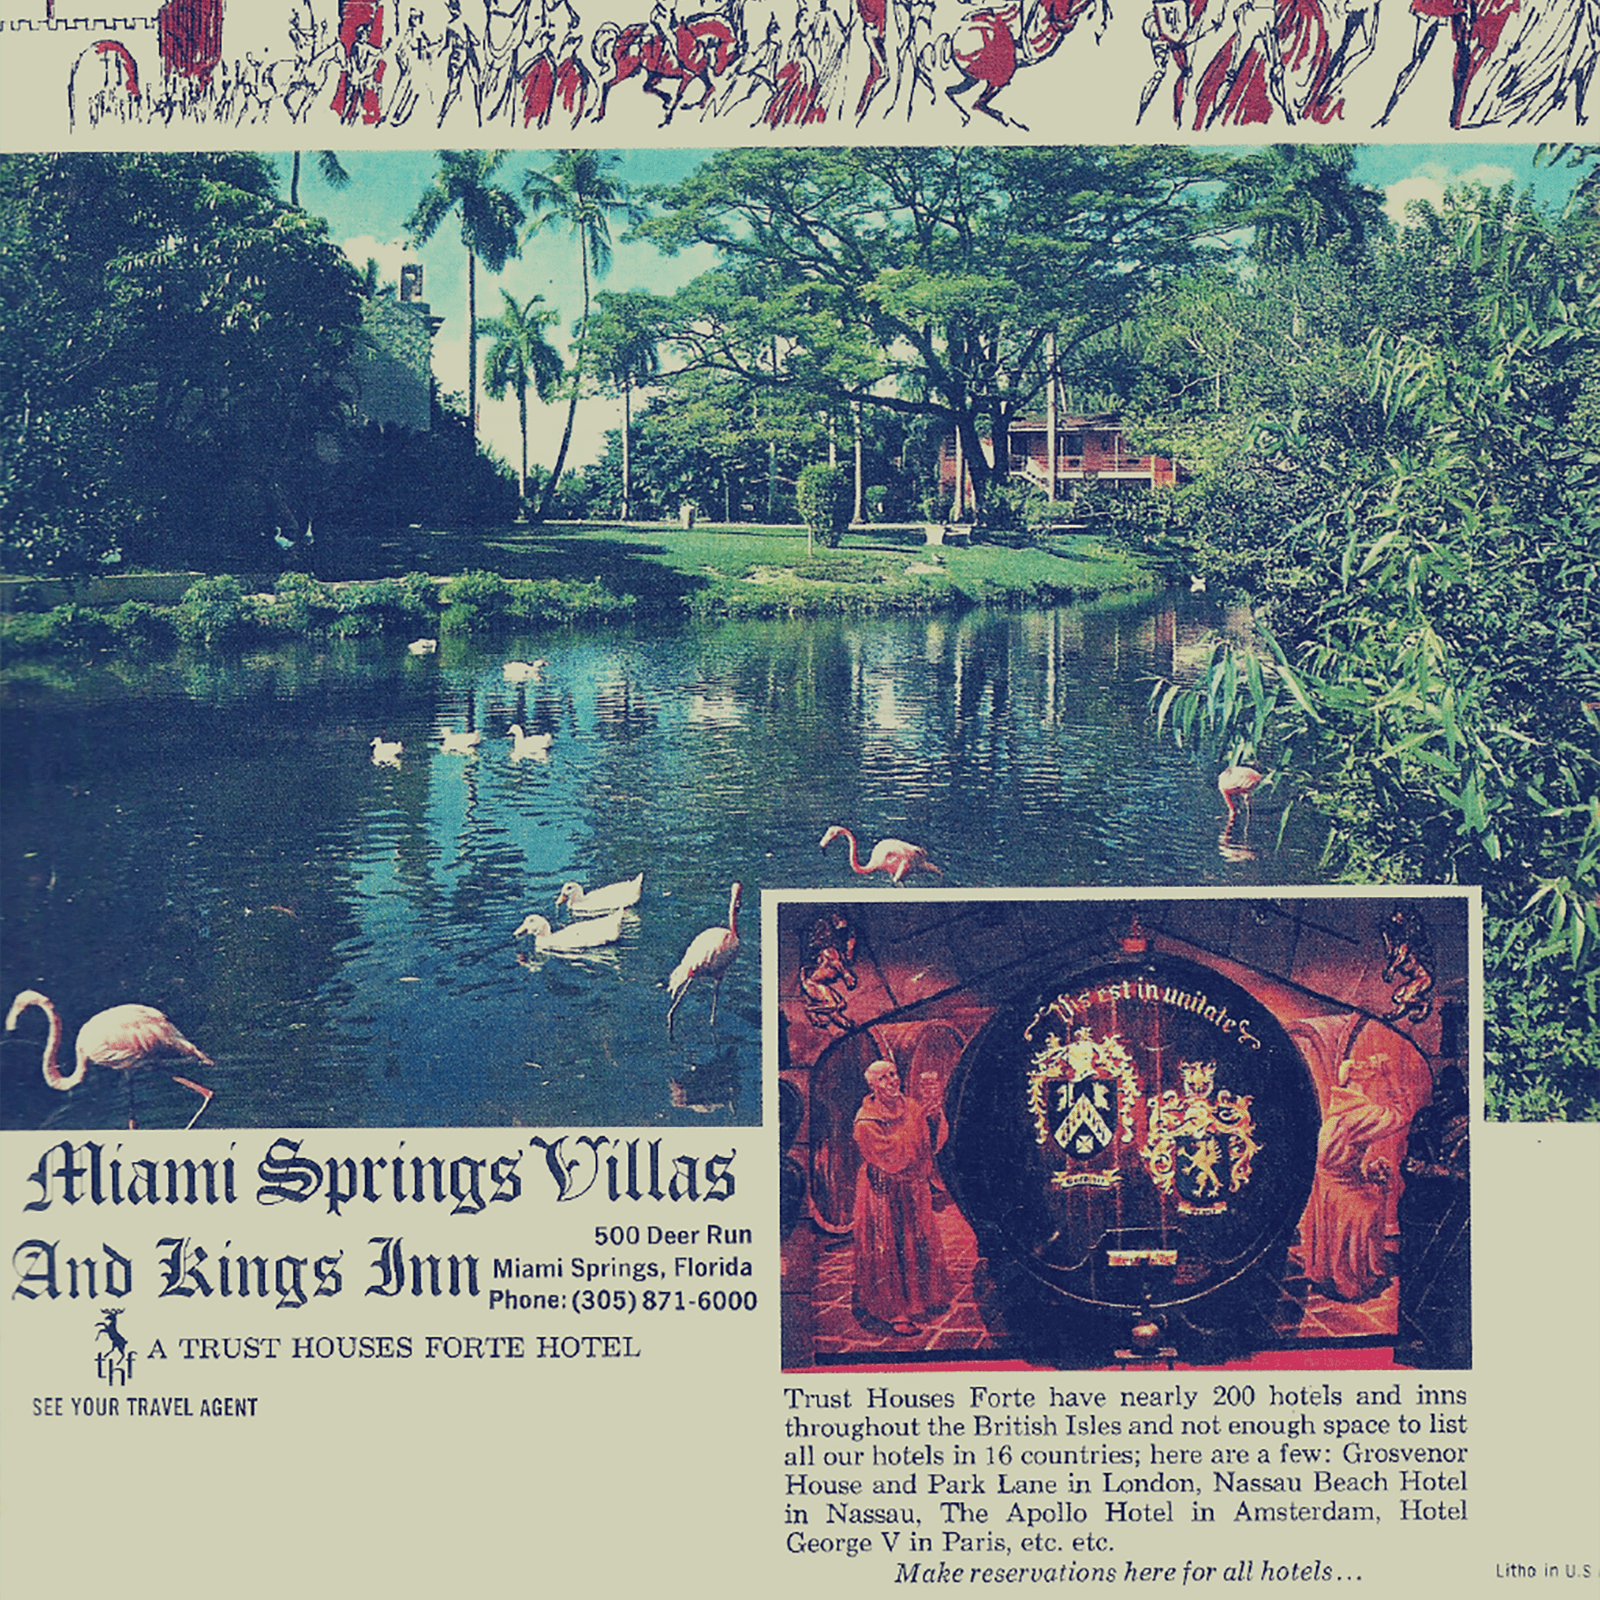 After his mother's death, Glenn, Jr. sold the home to Art Bruns and associates, and they developed the property as the Miami Springs Villas.